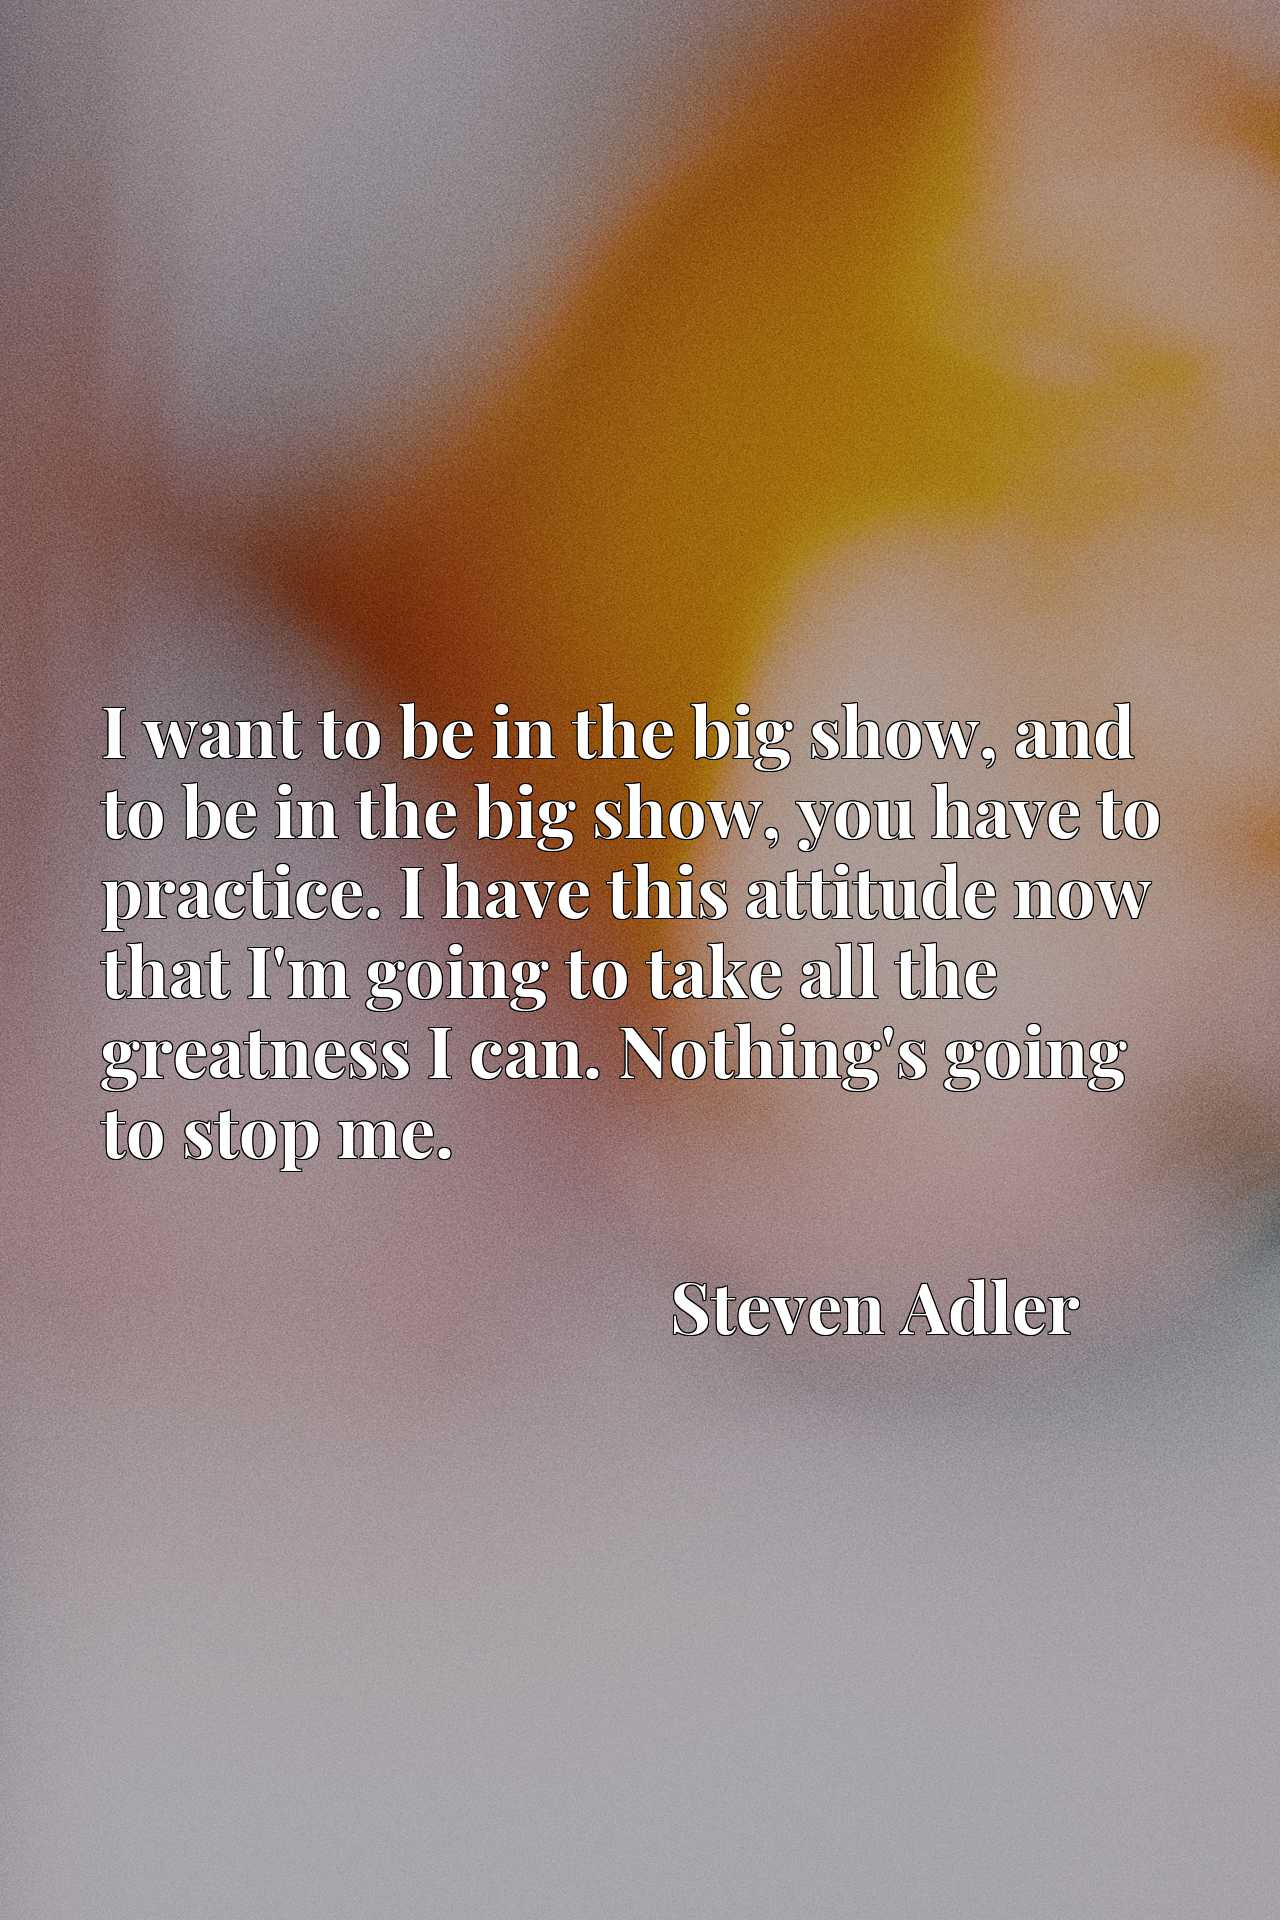 I want to be in the big show, and to be in the big show, you have to practice. I have this attitude now that I'm going to take all the greatness I can. Nothing's going to stop me.